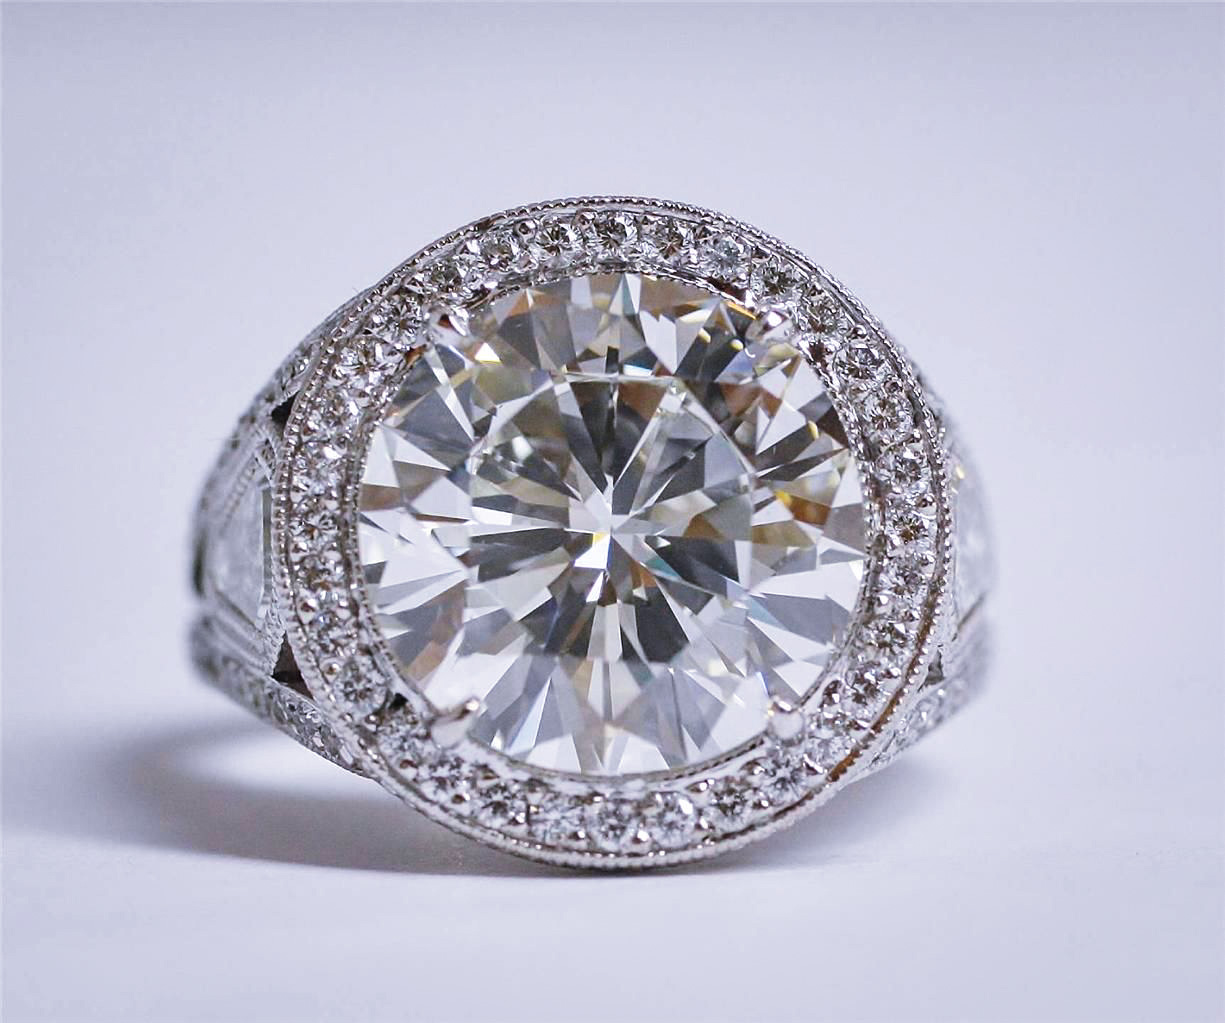 Palm Springs Diamond Buyer